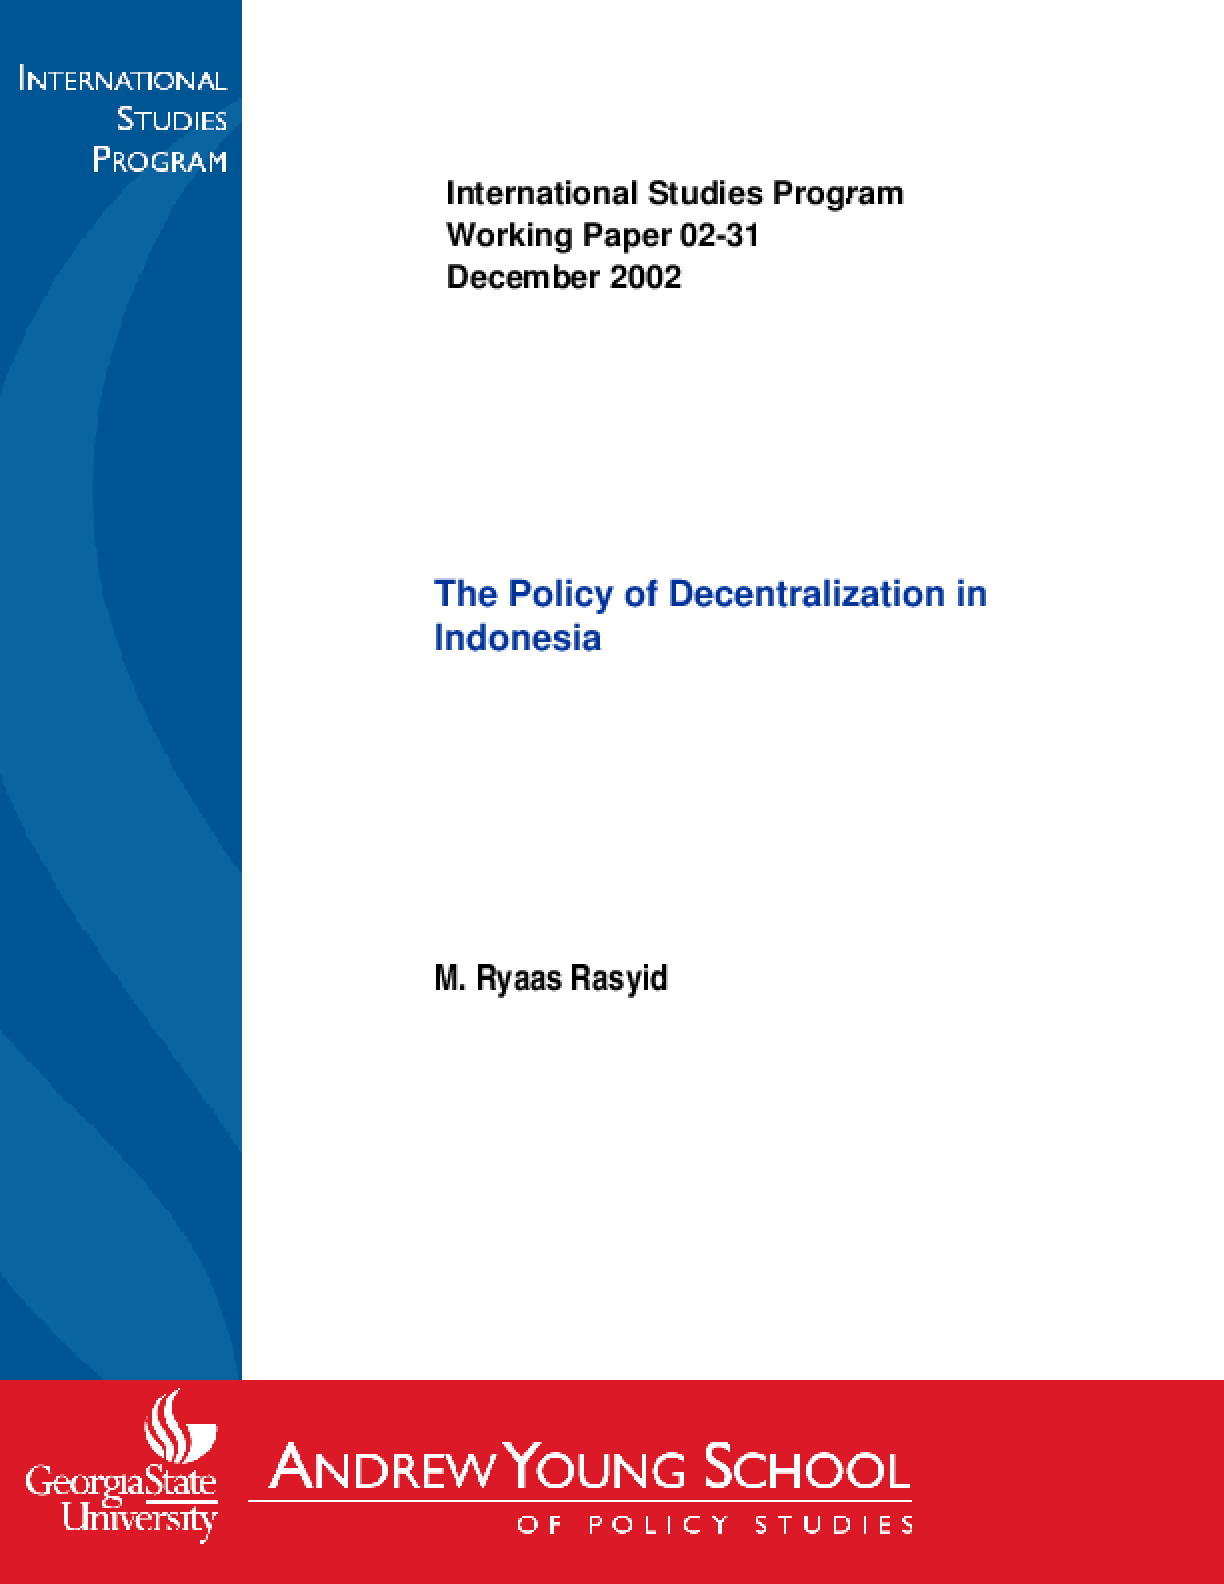 The Policy of Decentralization in Indonesia